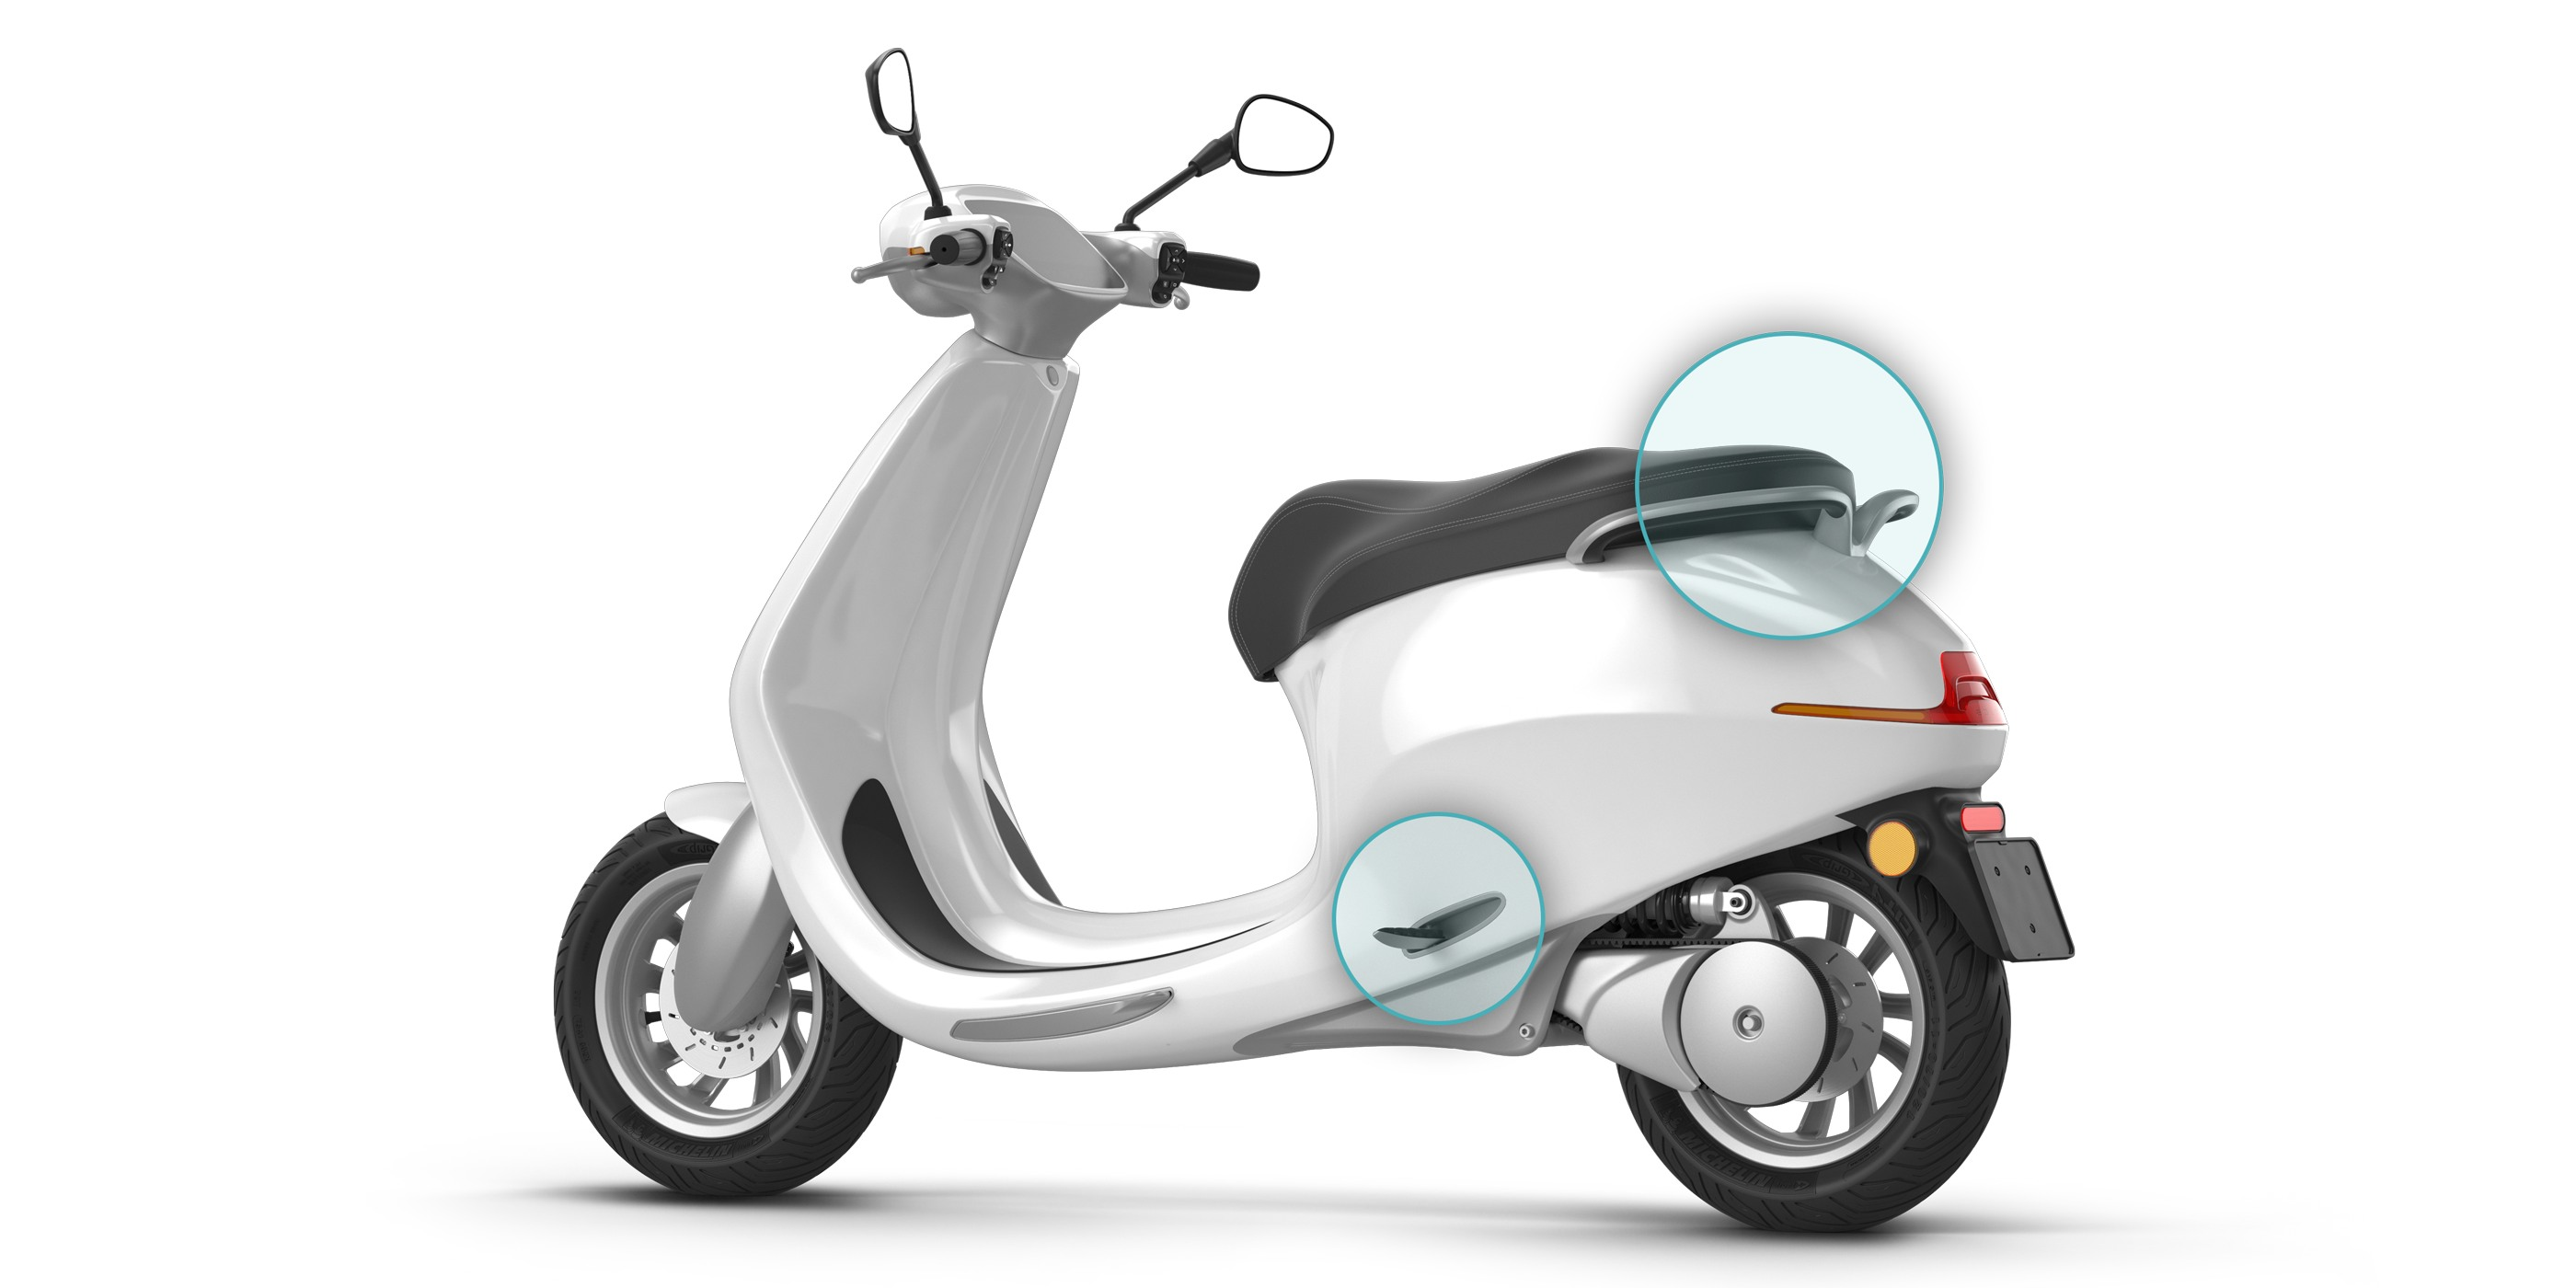 New Dutch Built Electric Scooter Claims 400 Km Range With